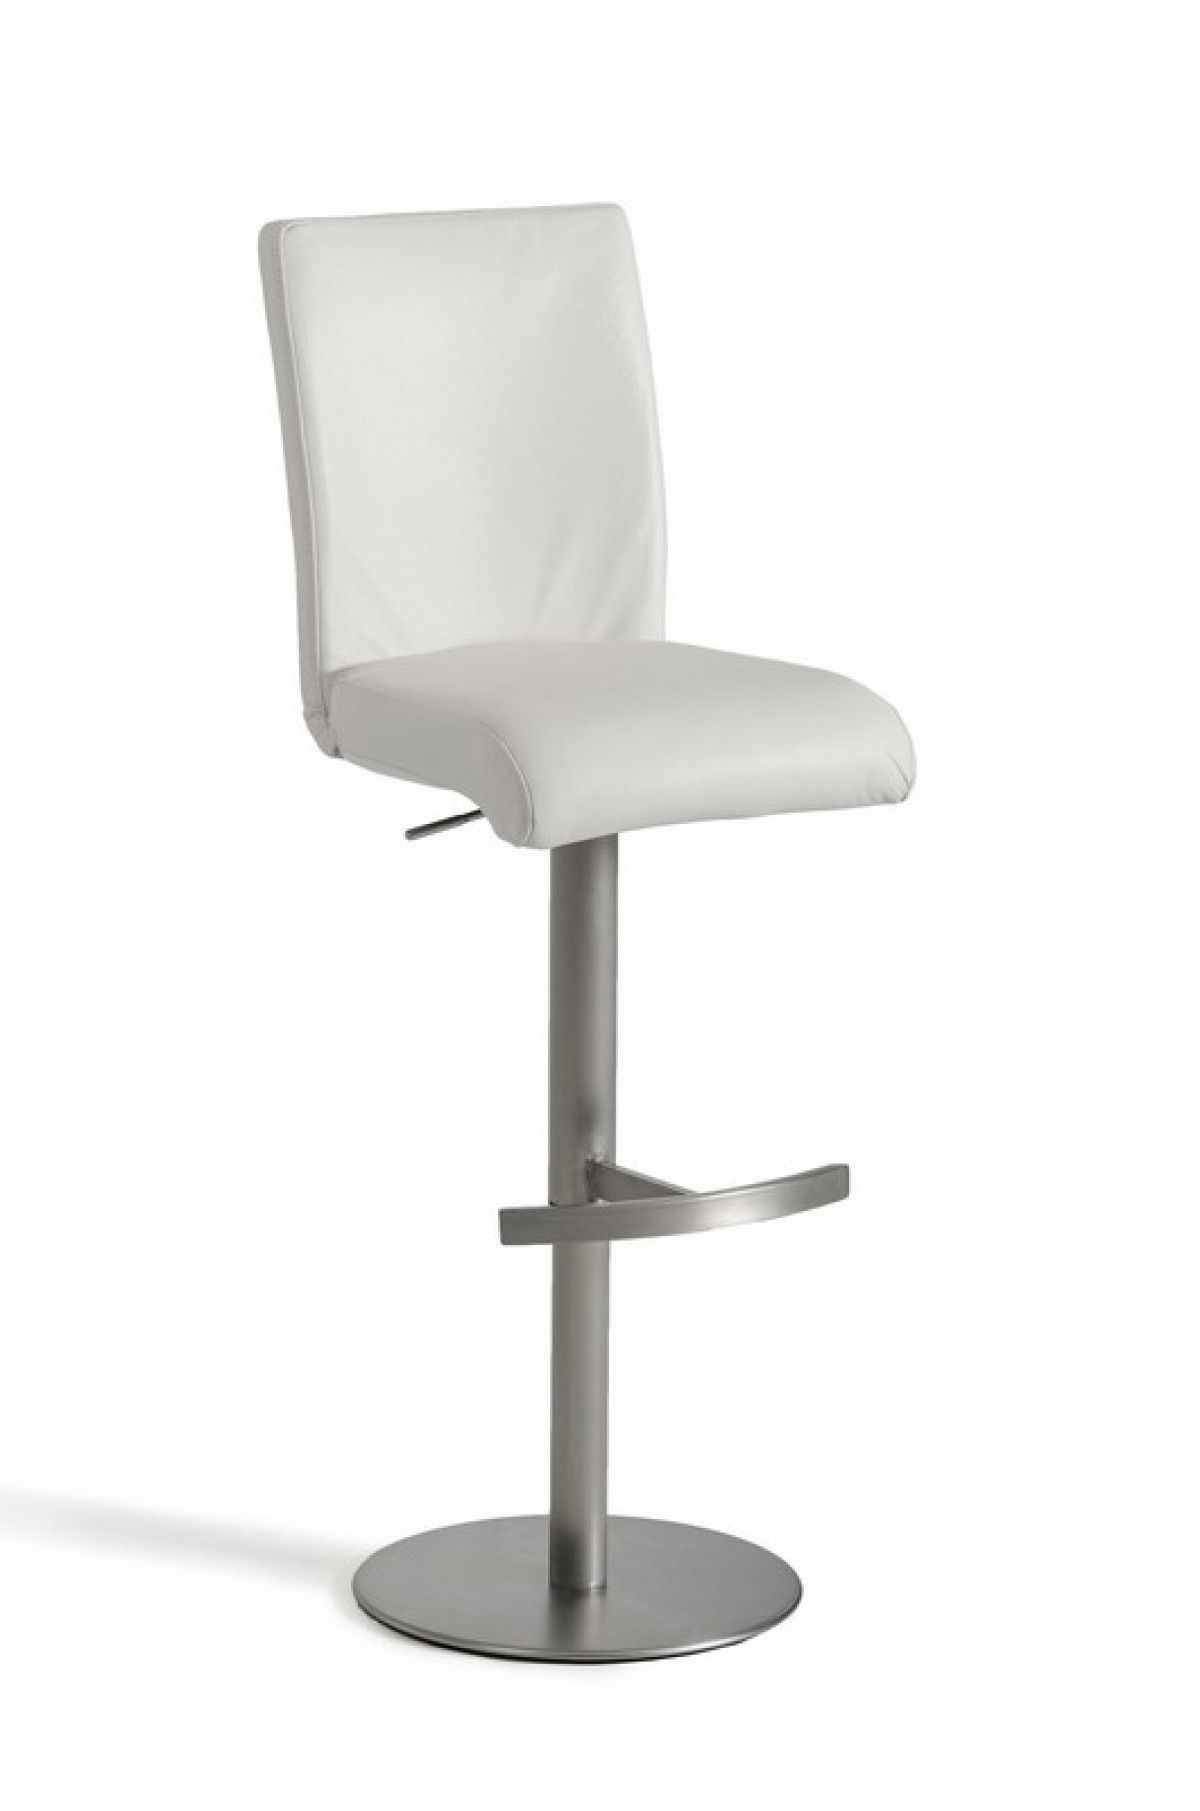 Modrest Modern White Eco Leather Bar Stool Vgcbt1206 Whtproduct 16170 Features Whiteeco Leatherstainless Steel Swivel Base Leather Bar Stools Bar Stools Stool